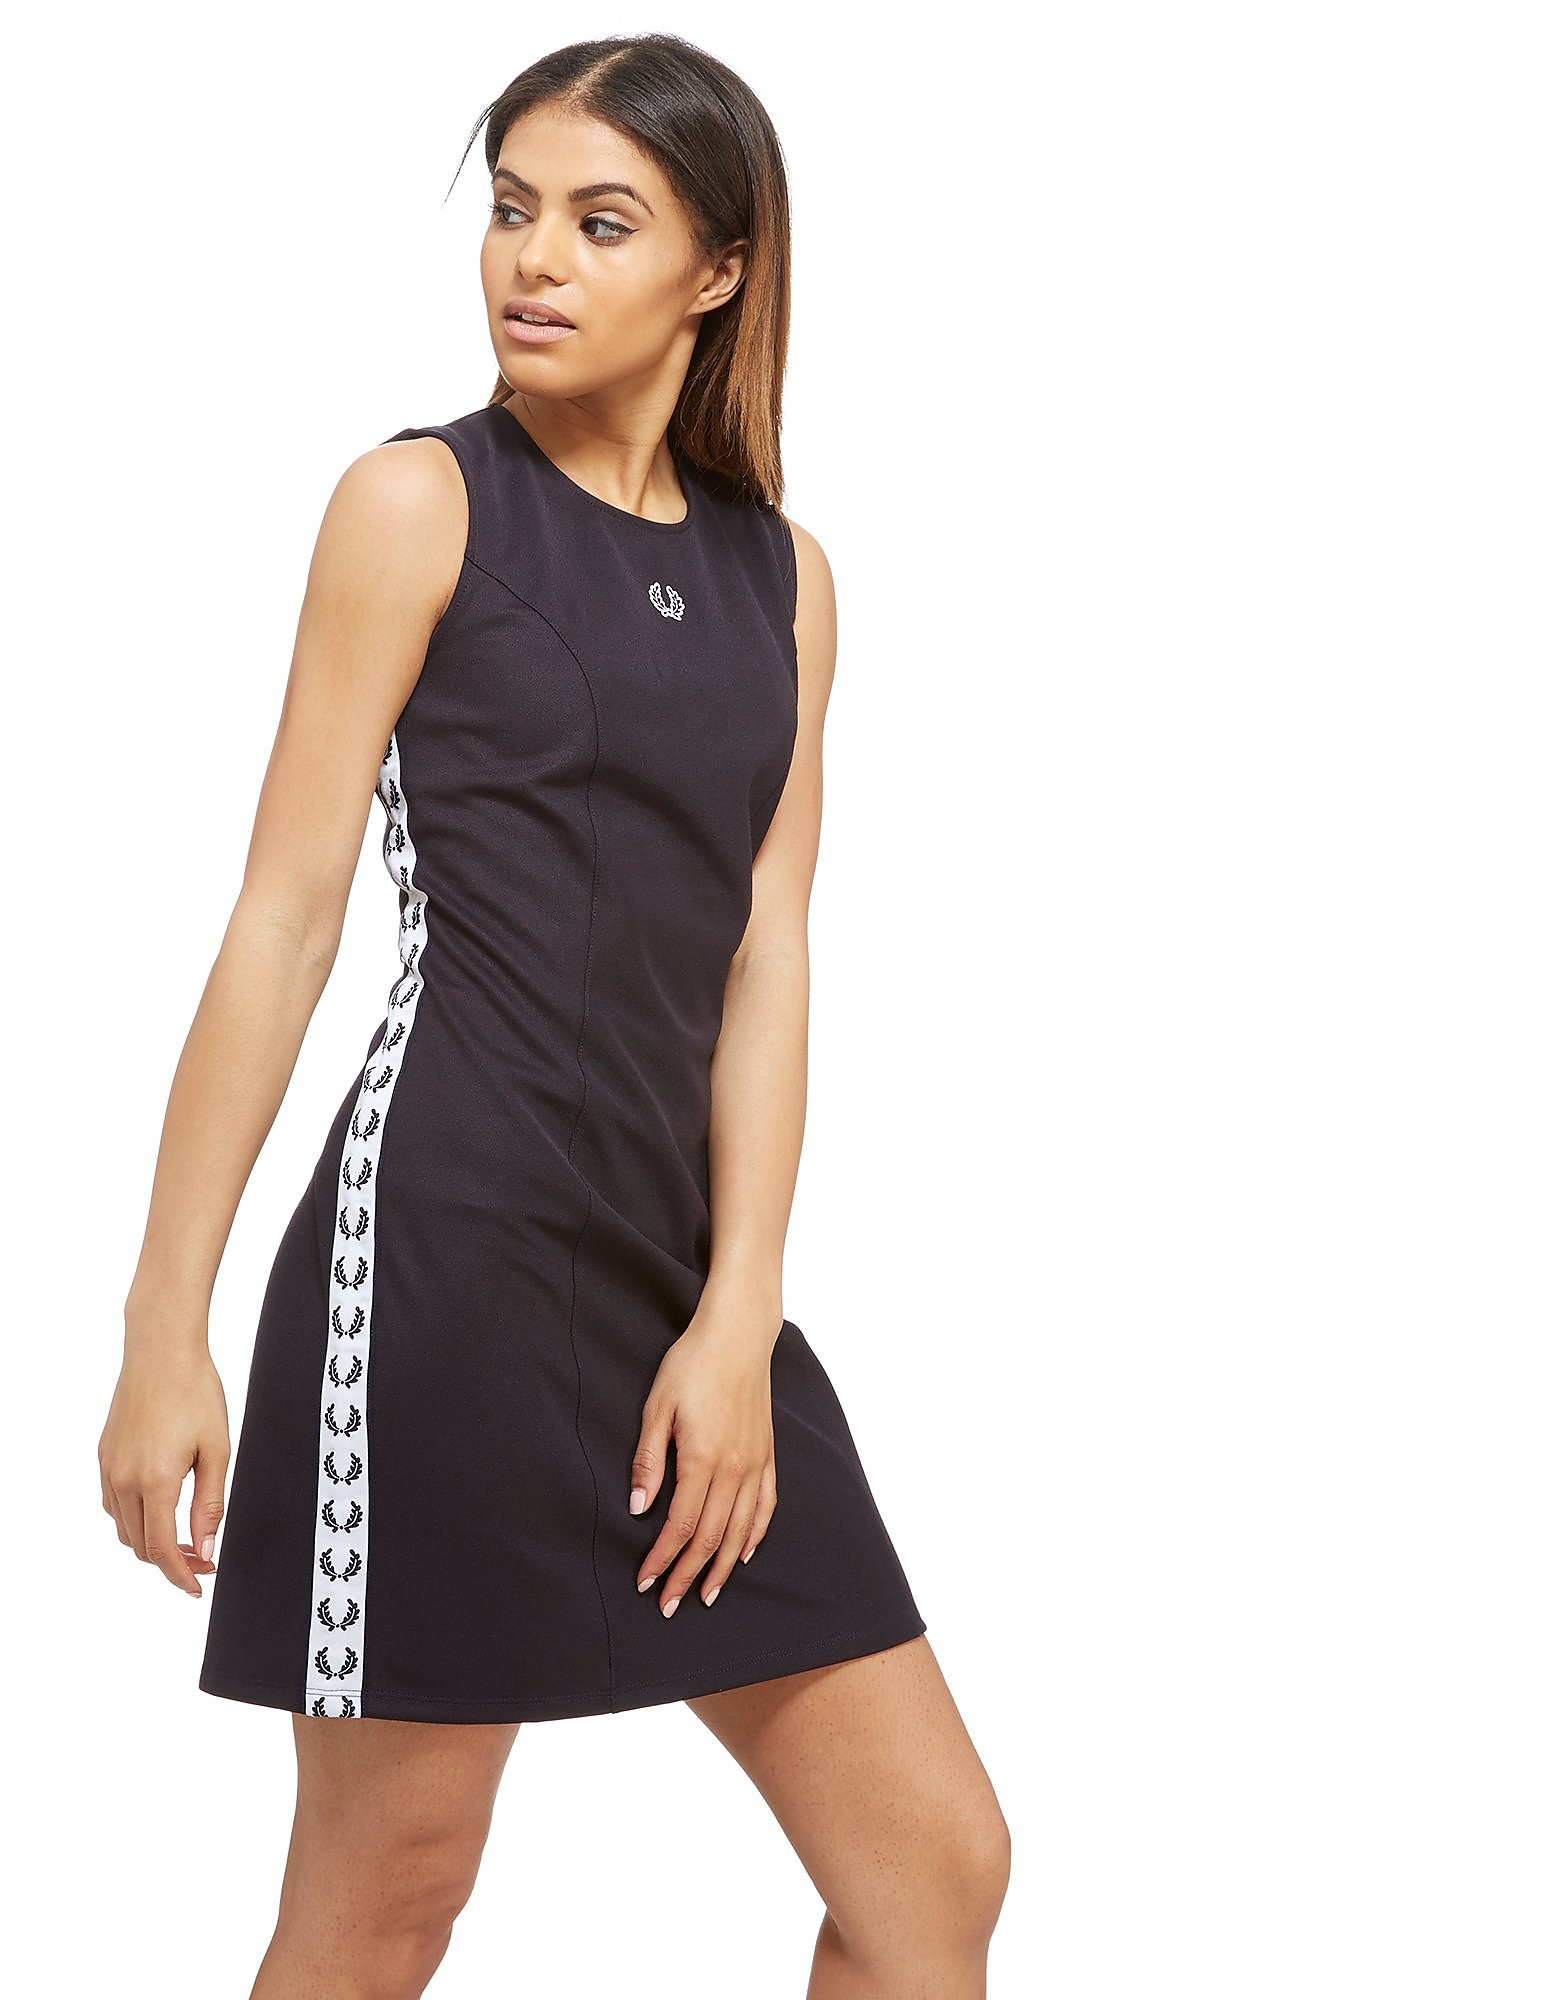 Fred Perry Tape Tricot Tennis Dress